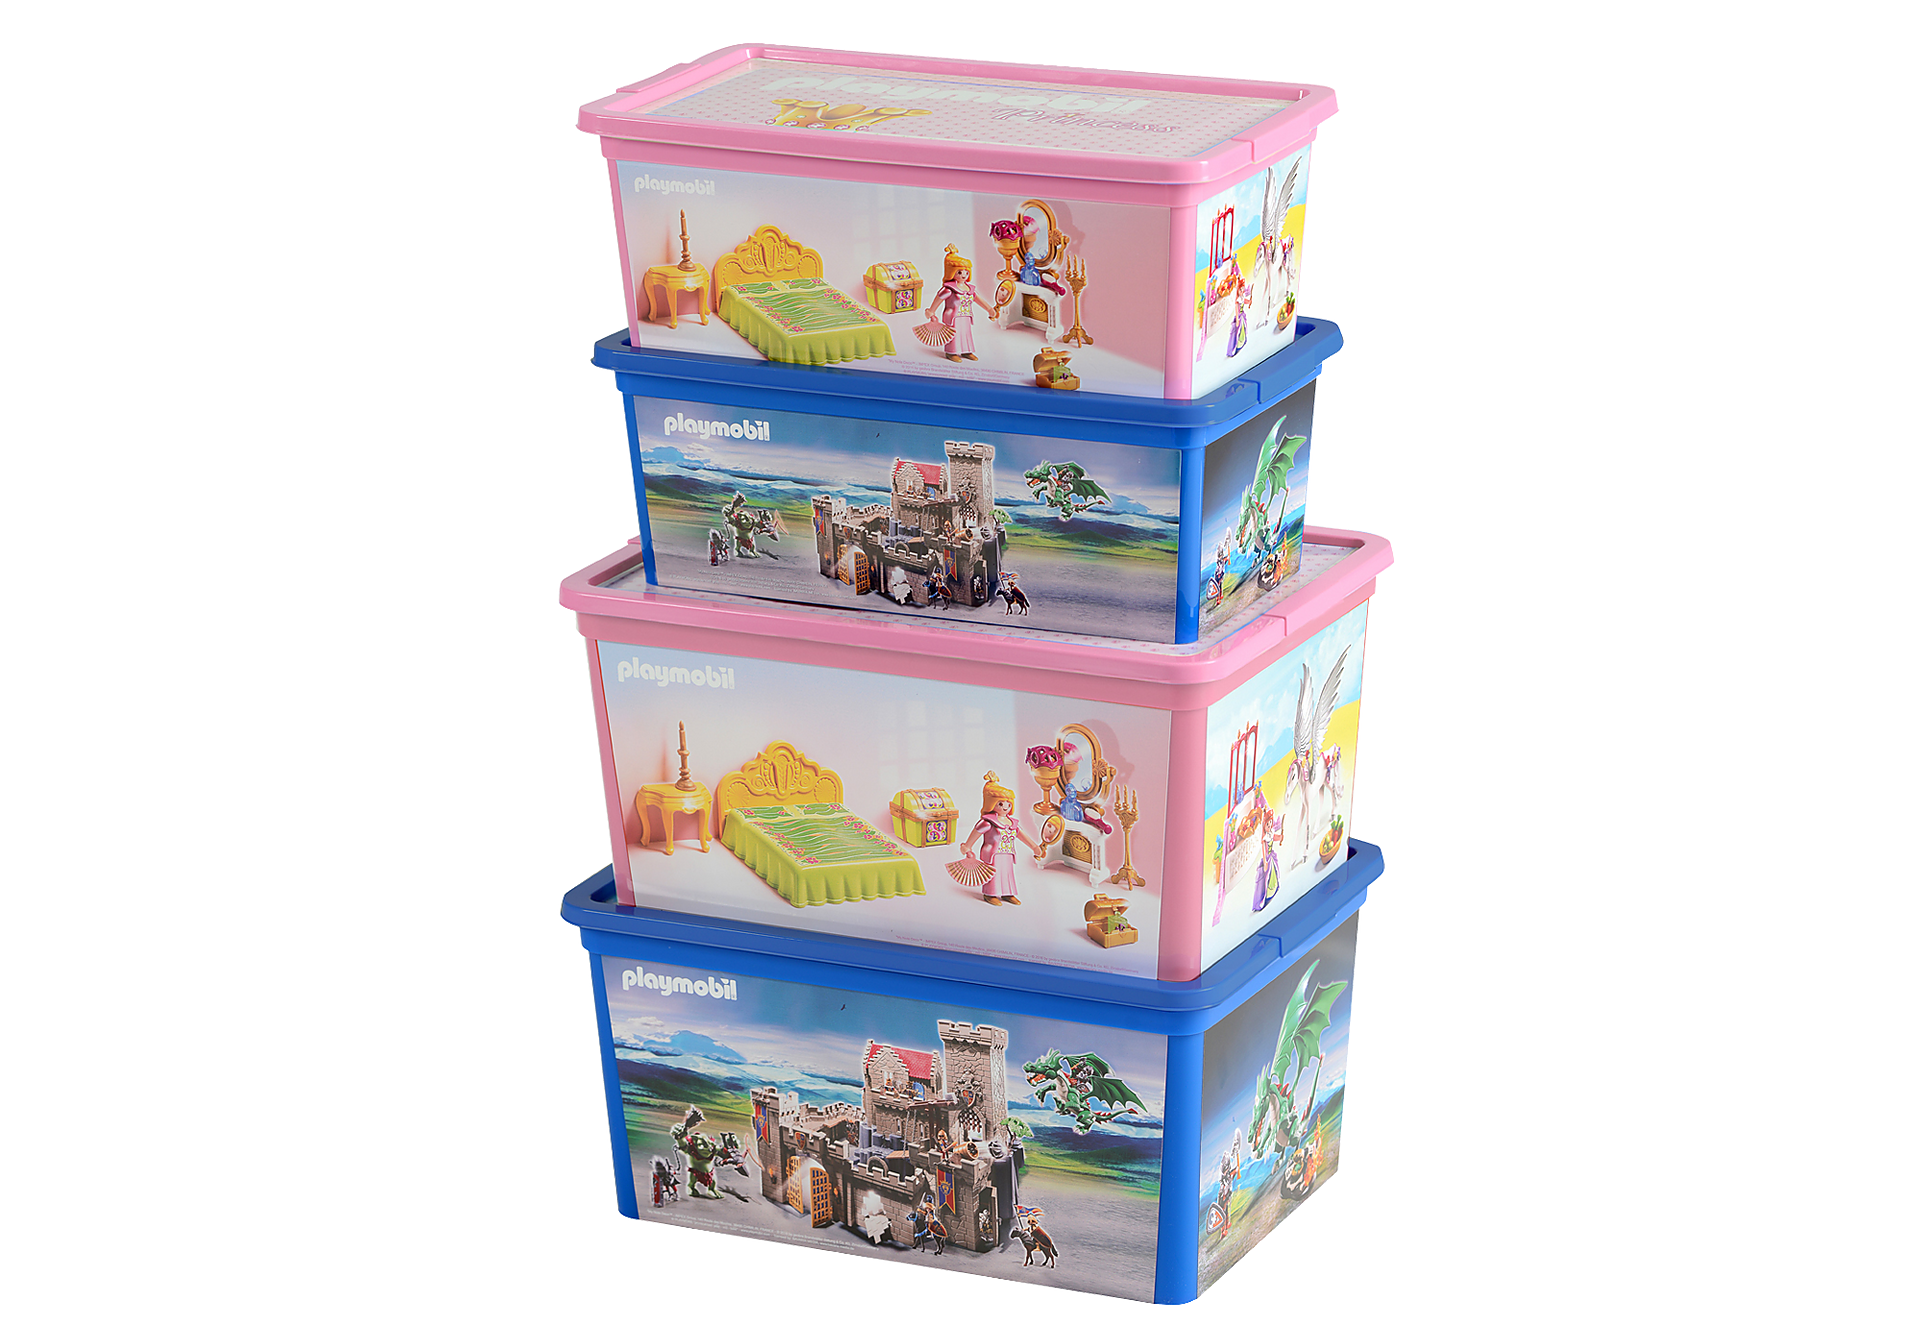 http://media.playmobil.com/i/playmobil/80488_product_extra1/12L Prinzessinen Aufbewahrungsbox